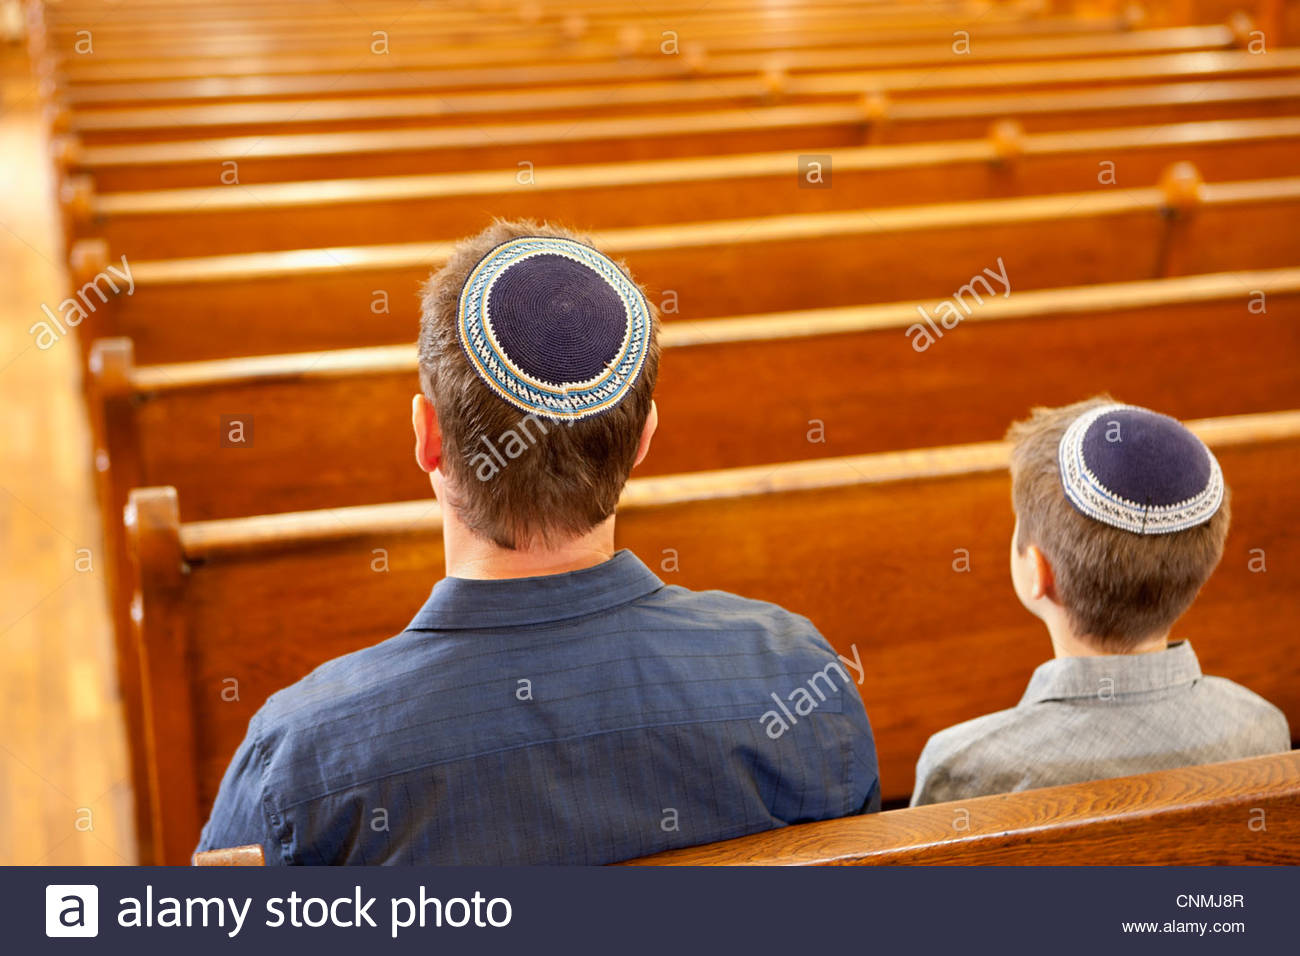 Father and son in yarmulkes sitting in synagogue - Stock Image